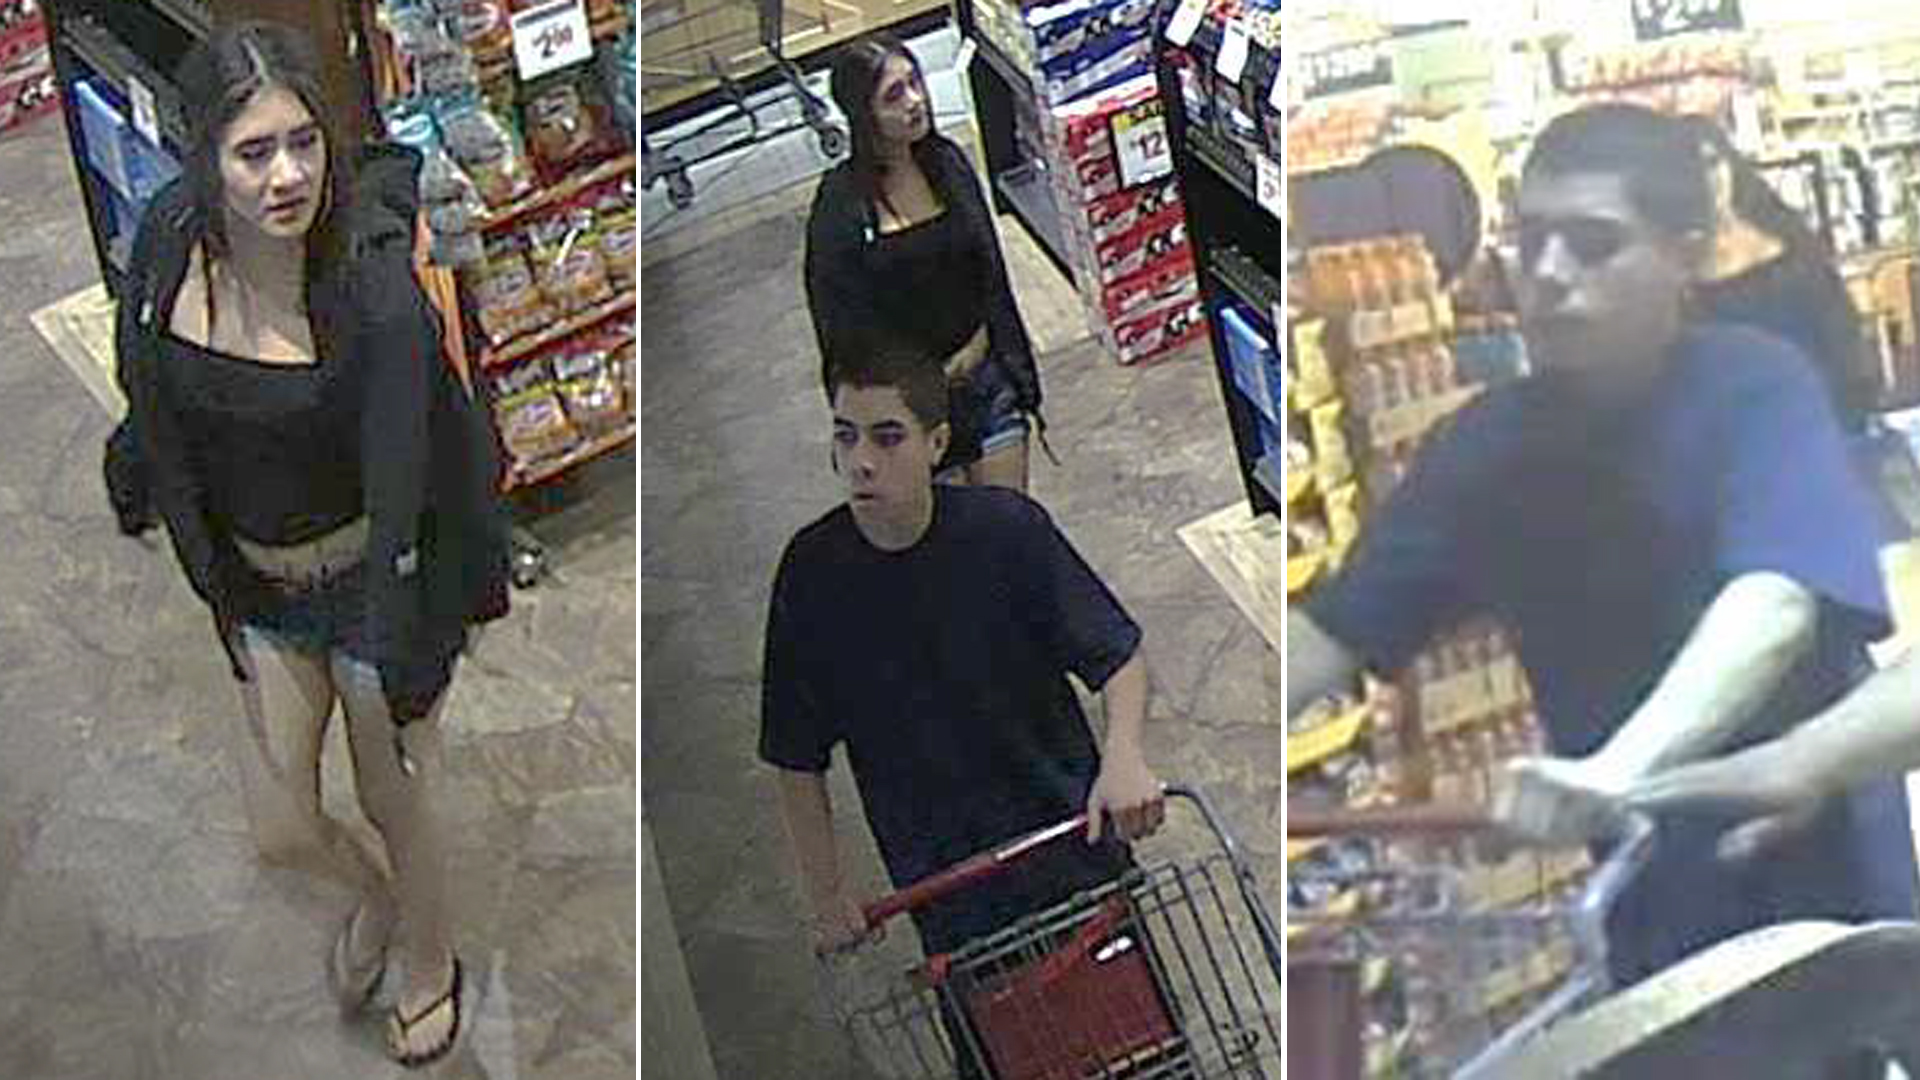 A woman and man sought in connection with a beer robbery at a Victorville grocery store are seen in surveillance images released Aug. 1, 2019, by the San Bernardino County Sheriff's Department.